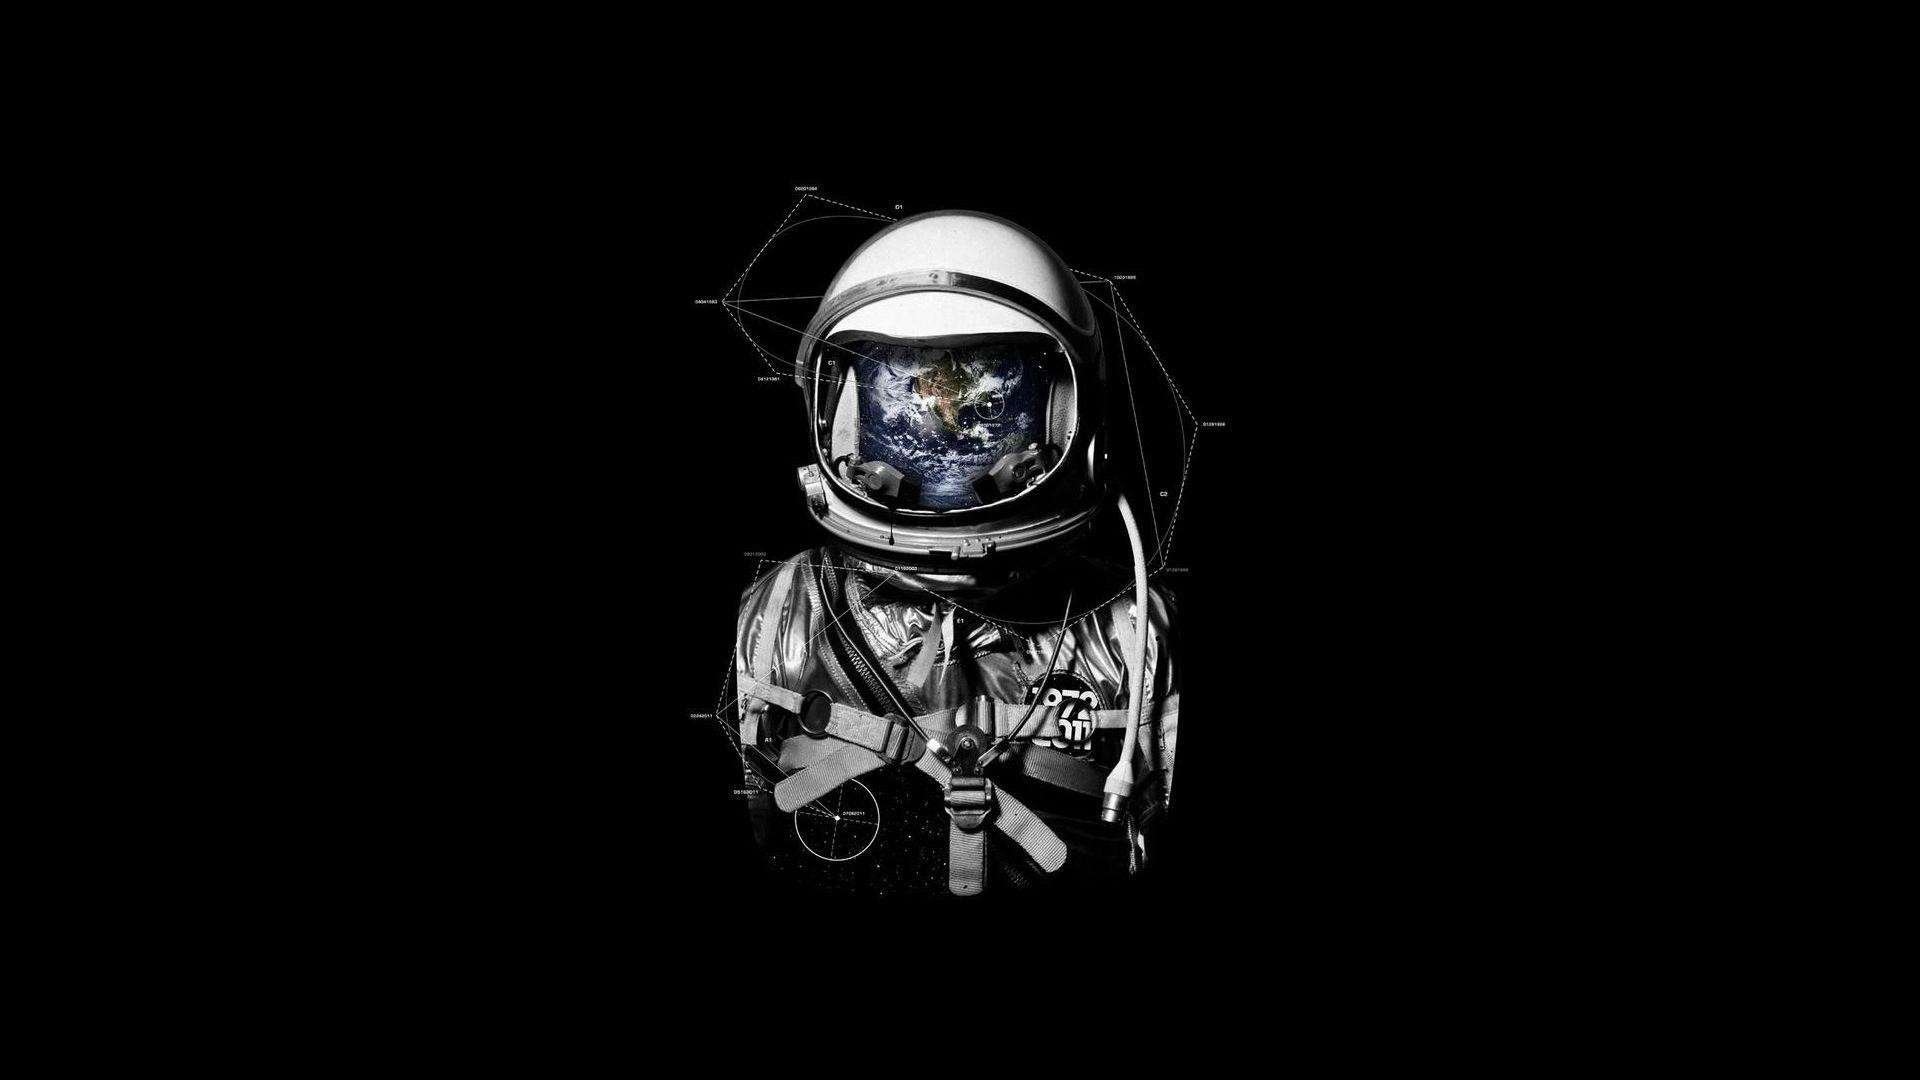 Astronaut Wallpapers | HD Wallpapers Early